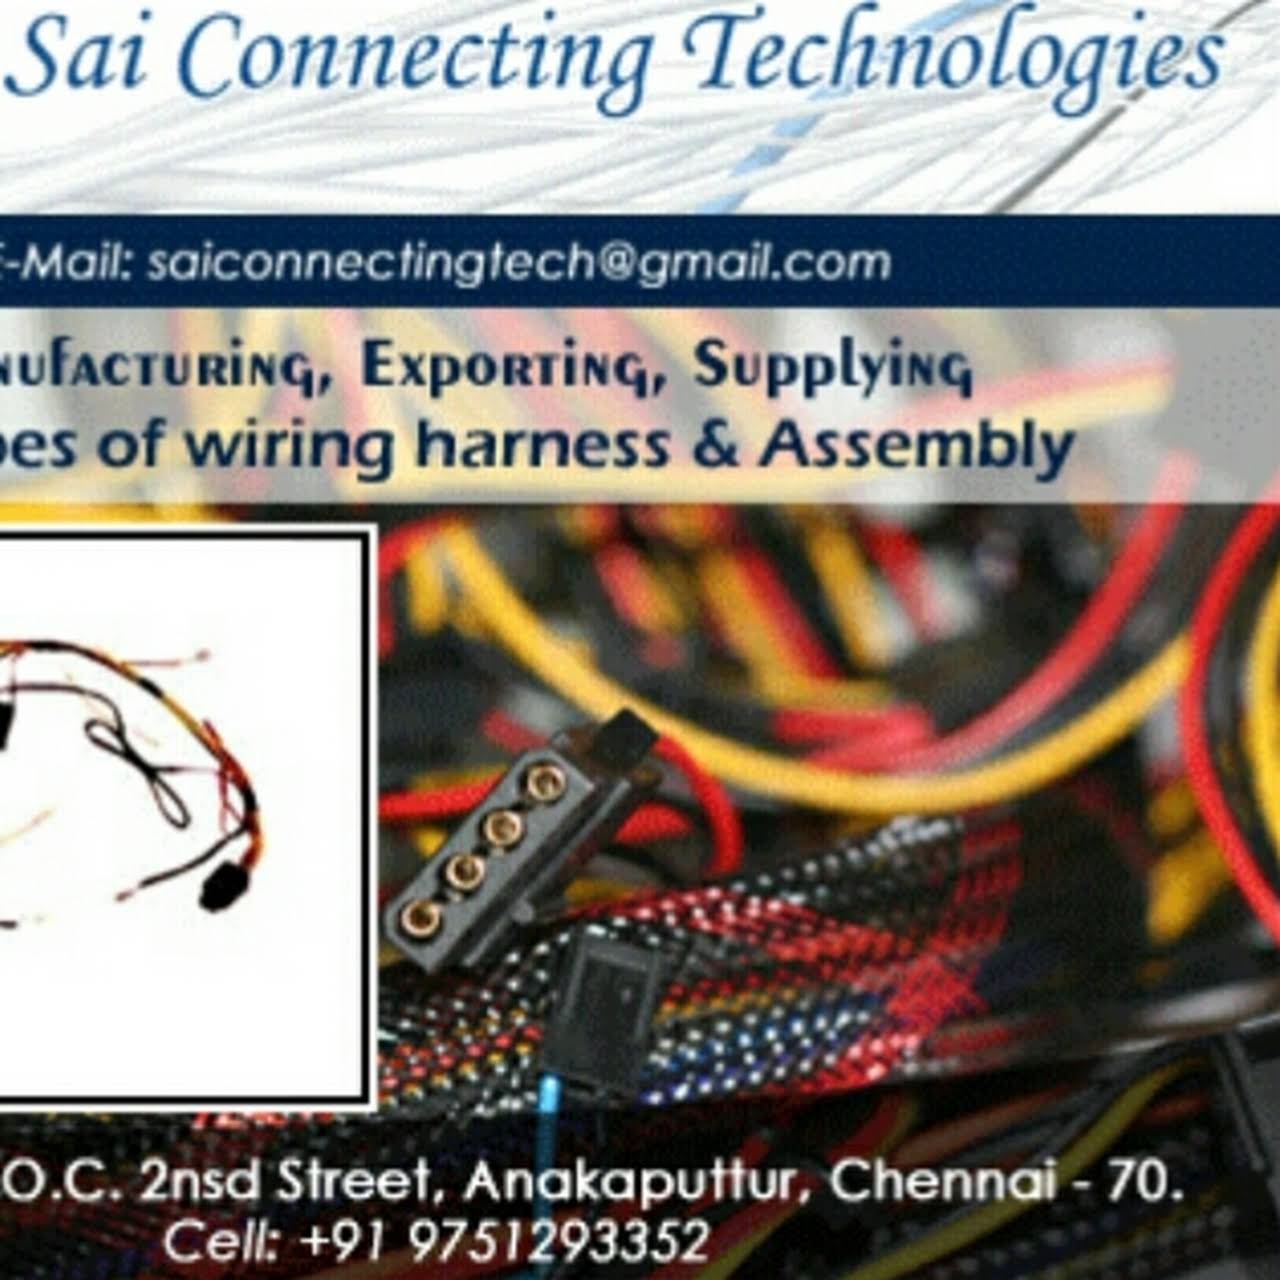 hight resolution of sai connecting technologies cable harness manufacturer in chennai wiring harness manufacturers in chennai